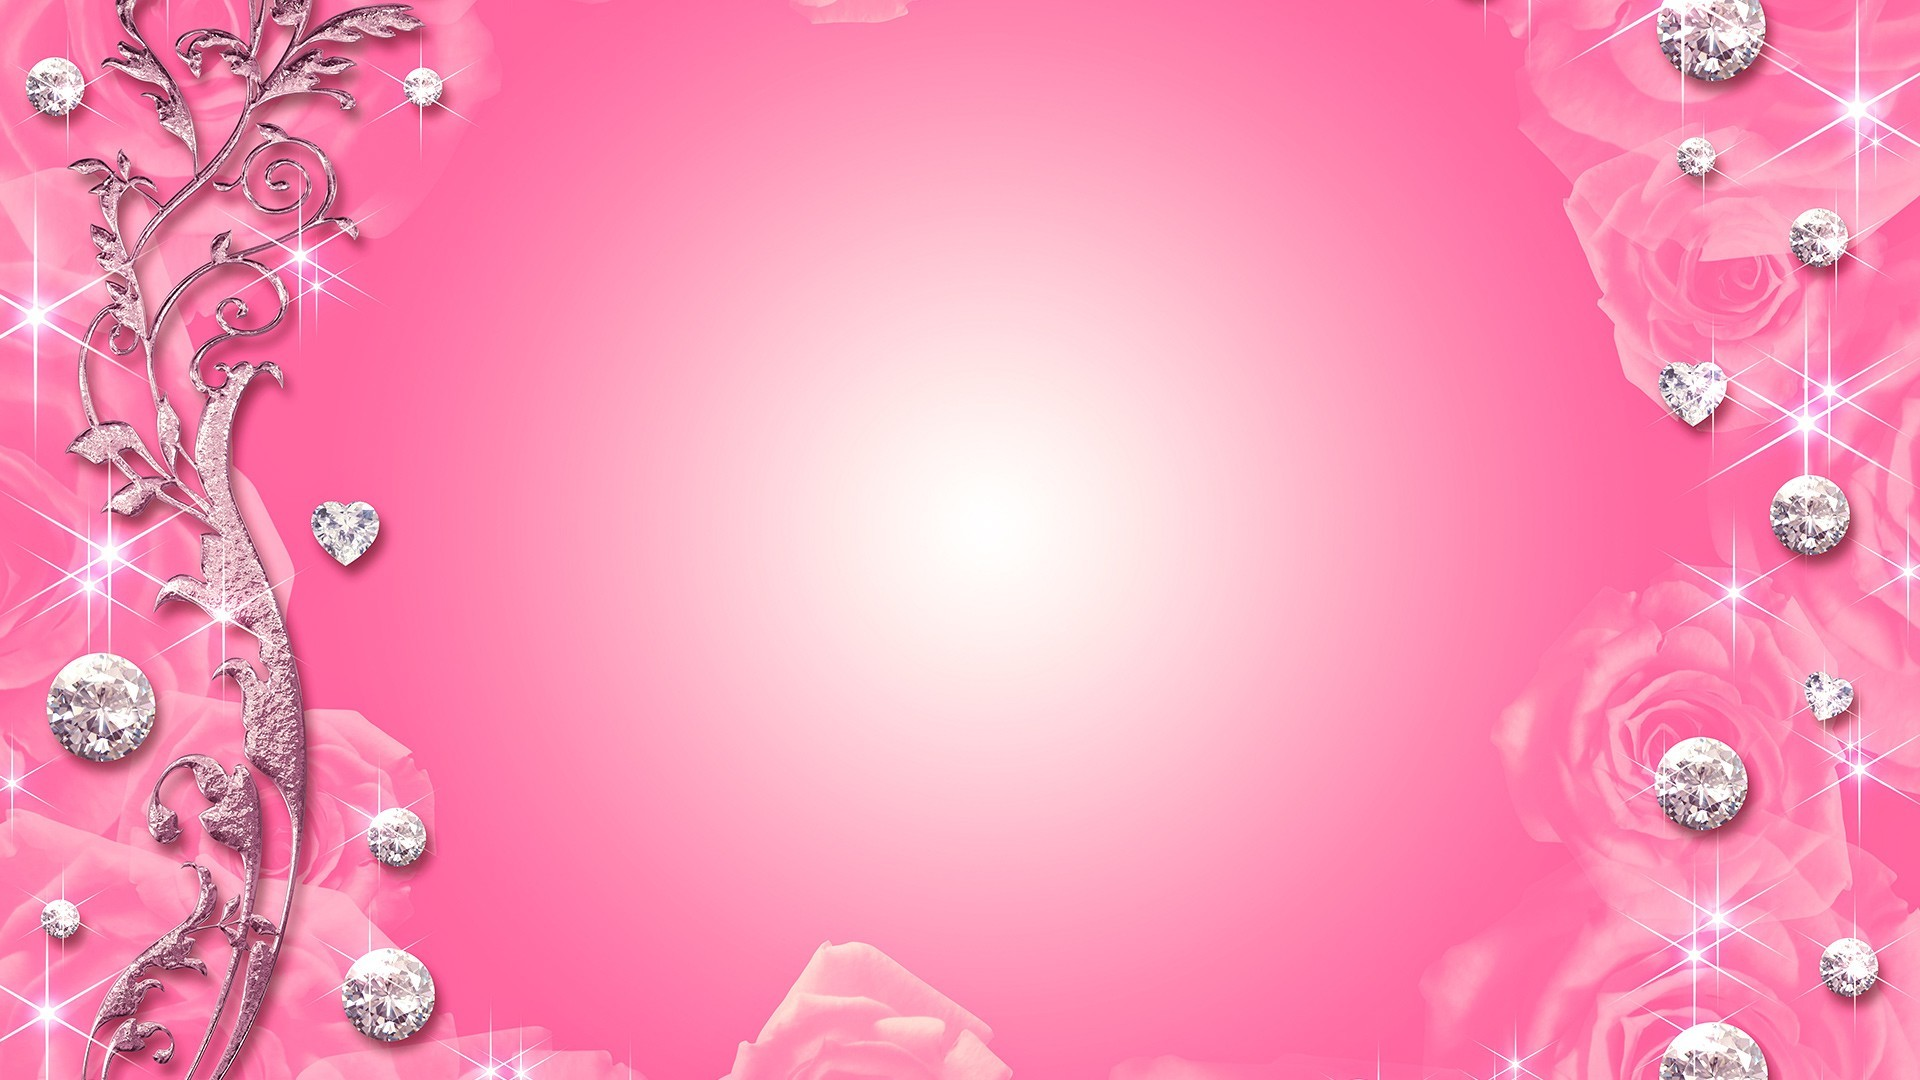 Res: 1920x1080, Pink Diamond Wallpapers (17 Wallpapers)